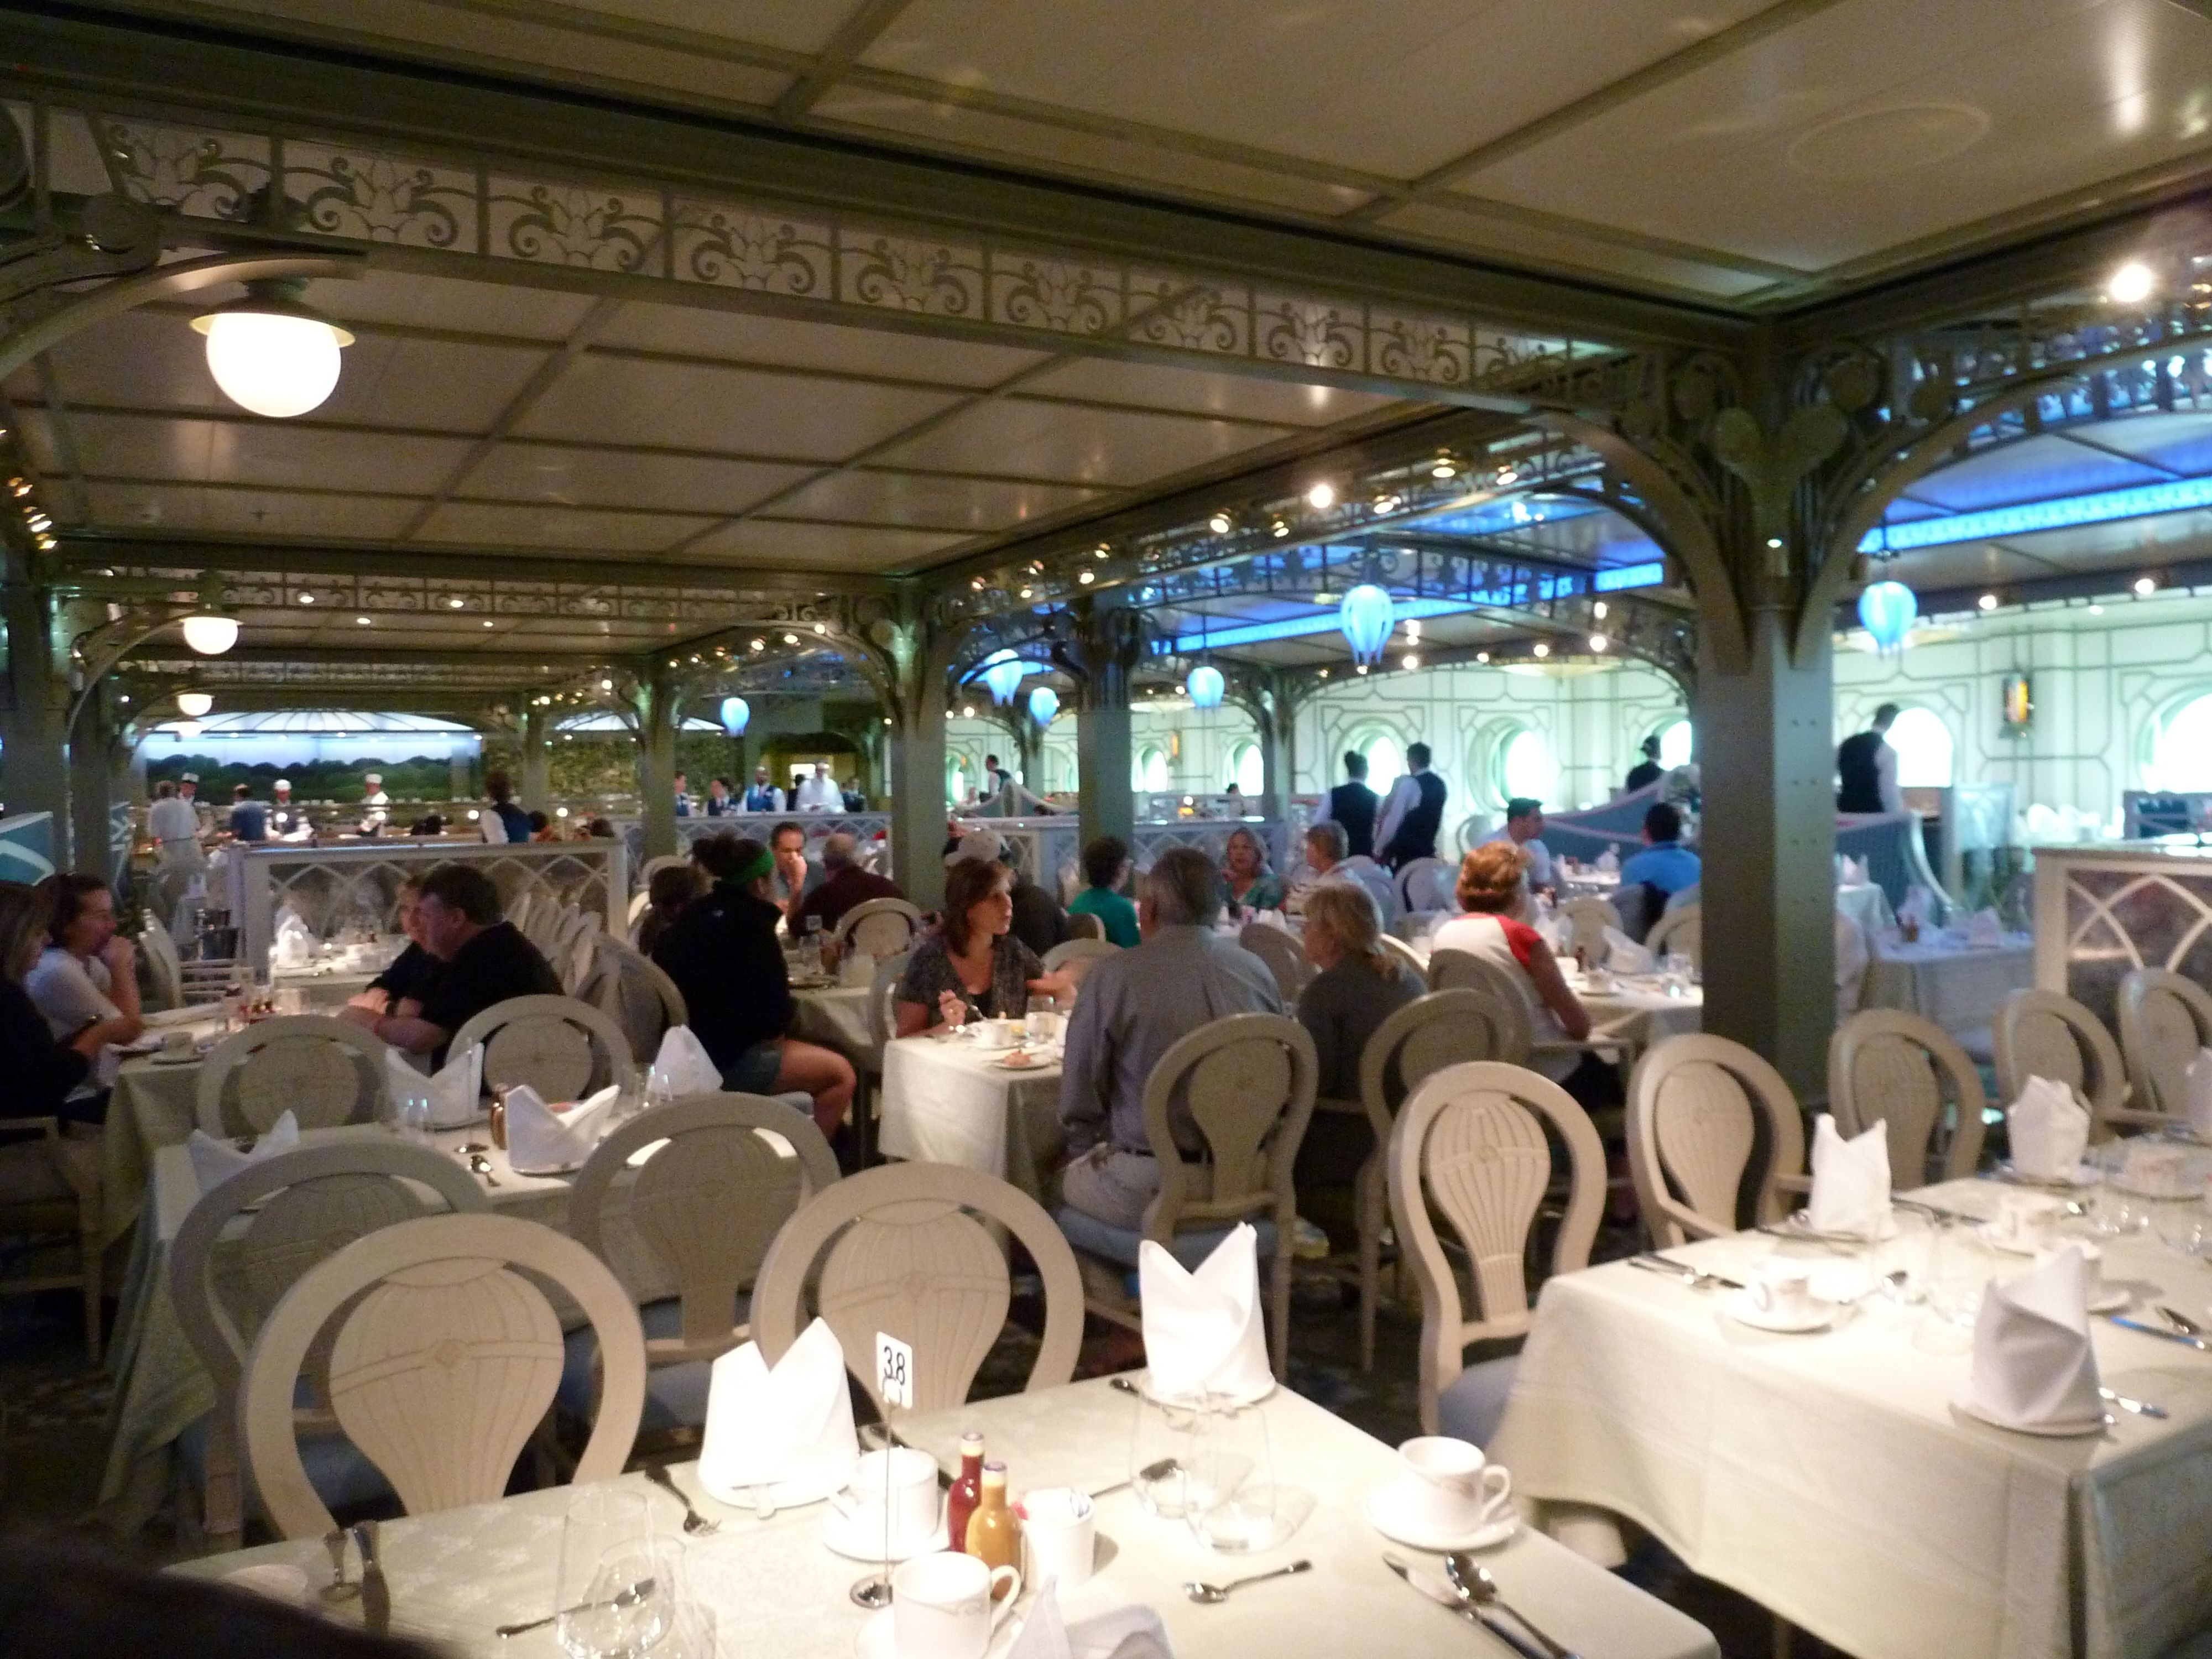 Dining Options Aboard The Disney Dream Cruise Ship